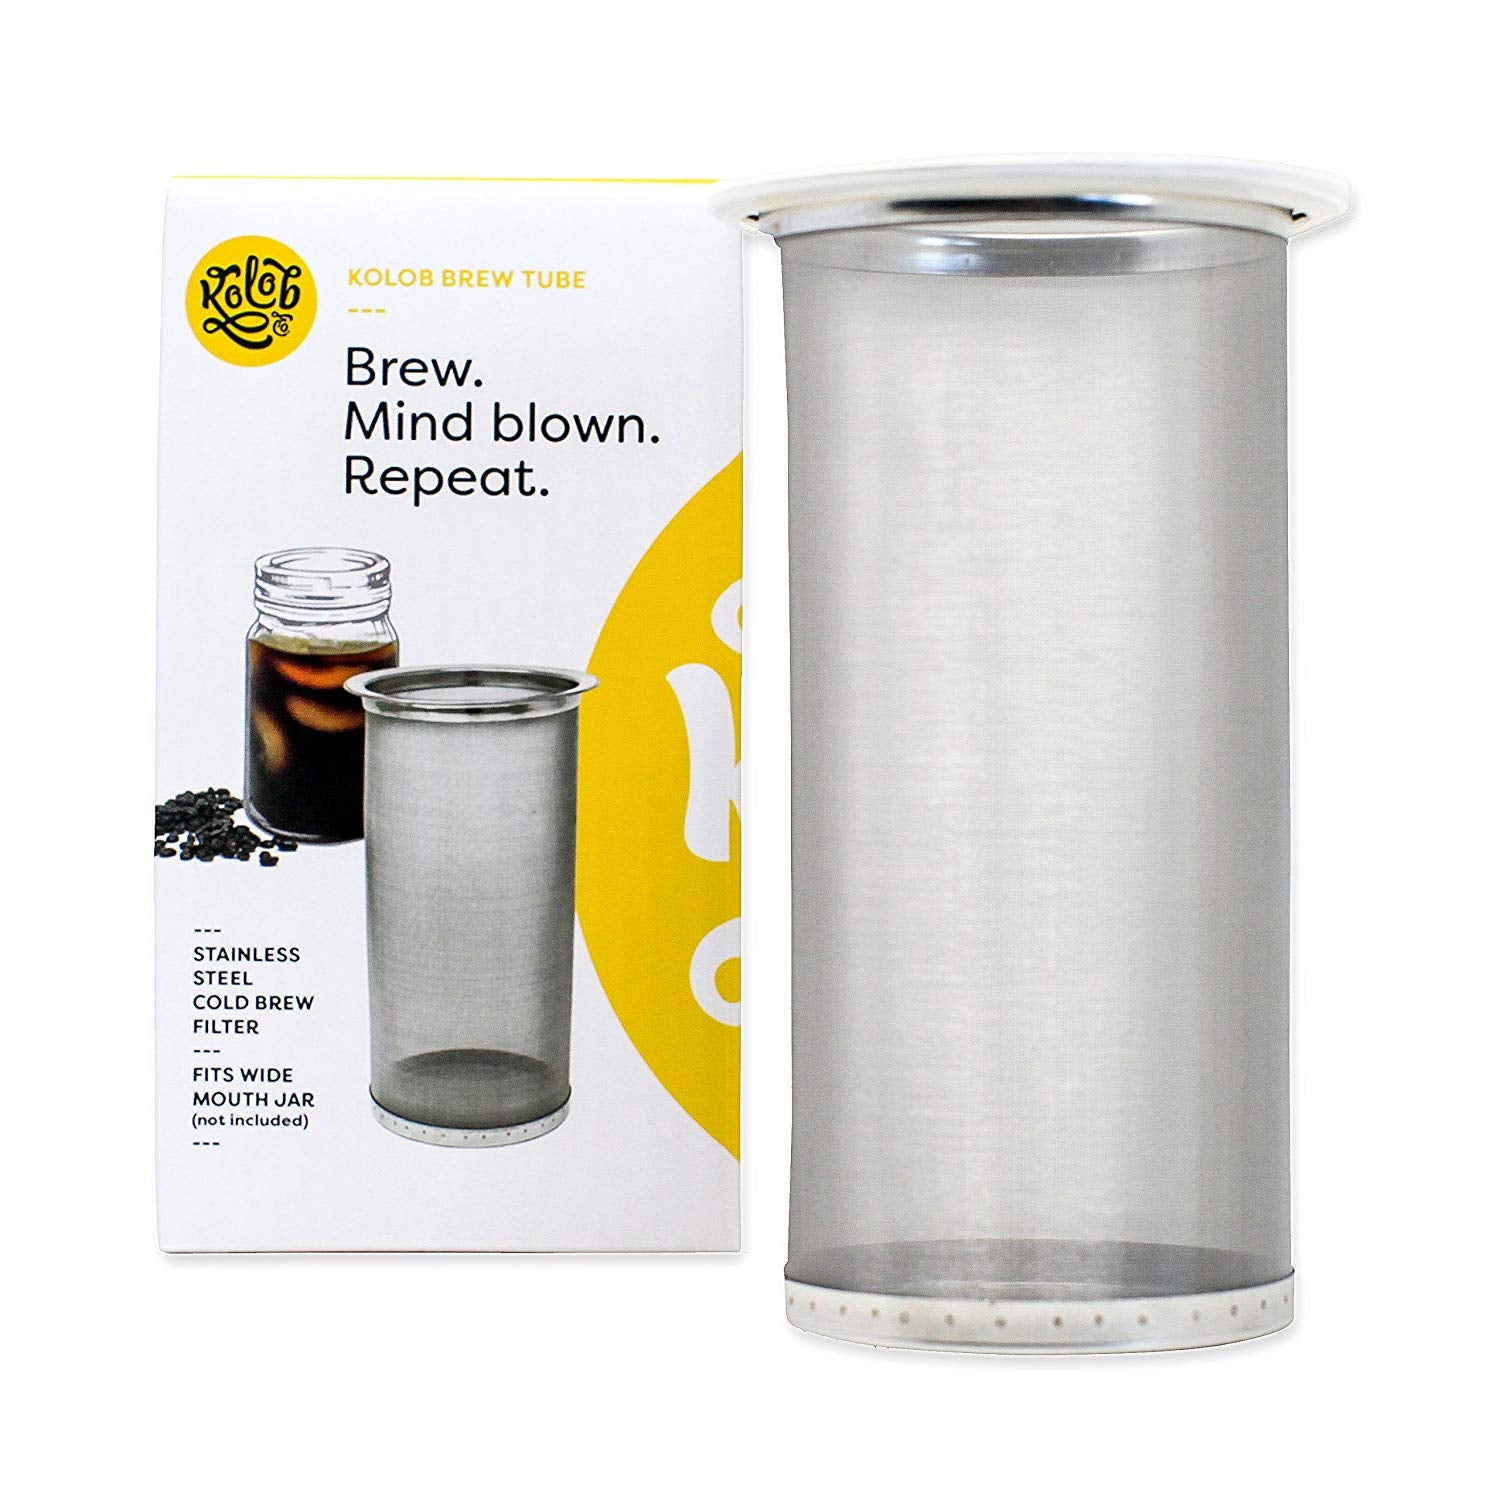 Kolob Brew Tube Cold Brew Coffee Maker